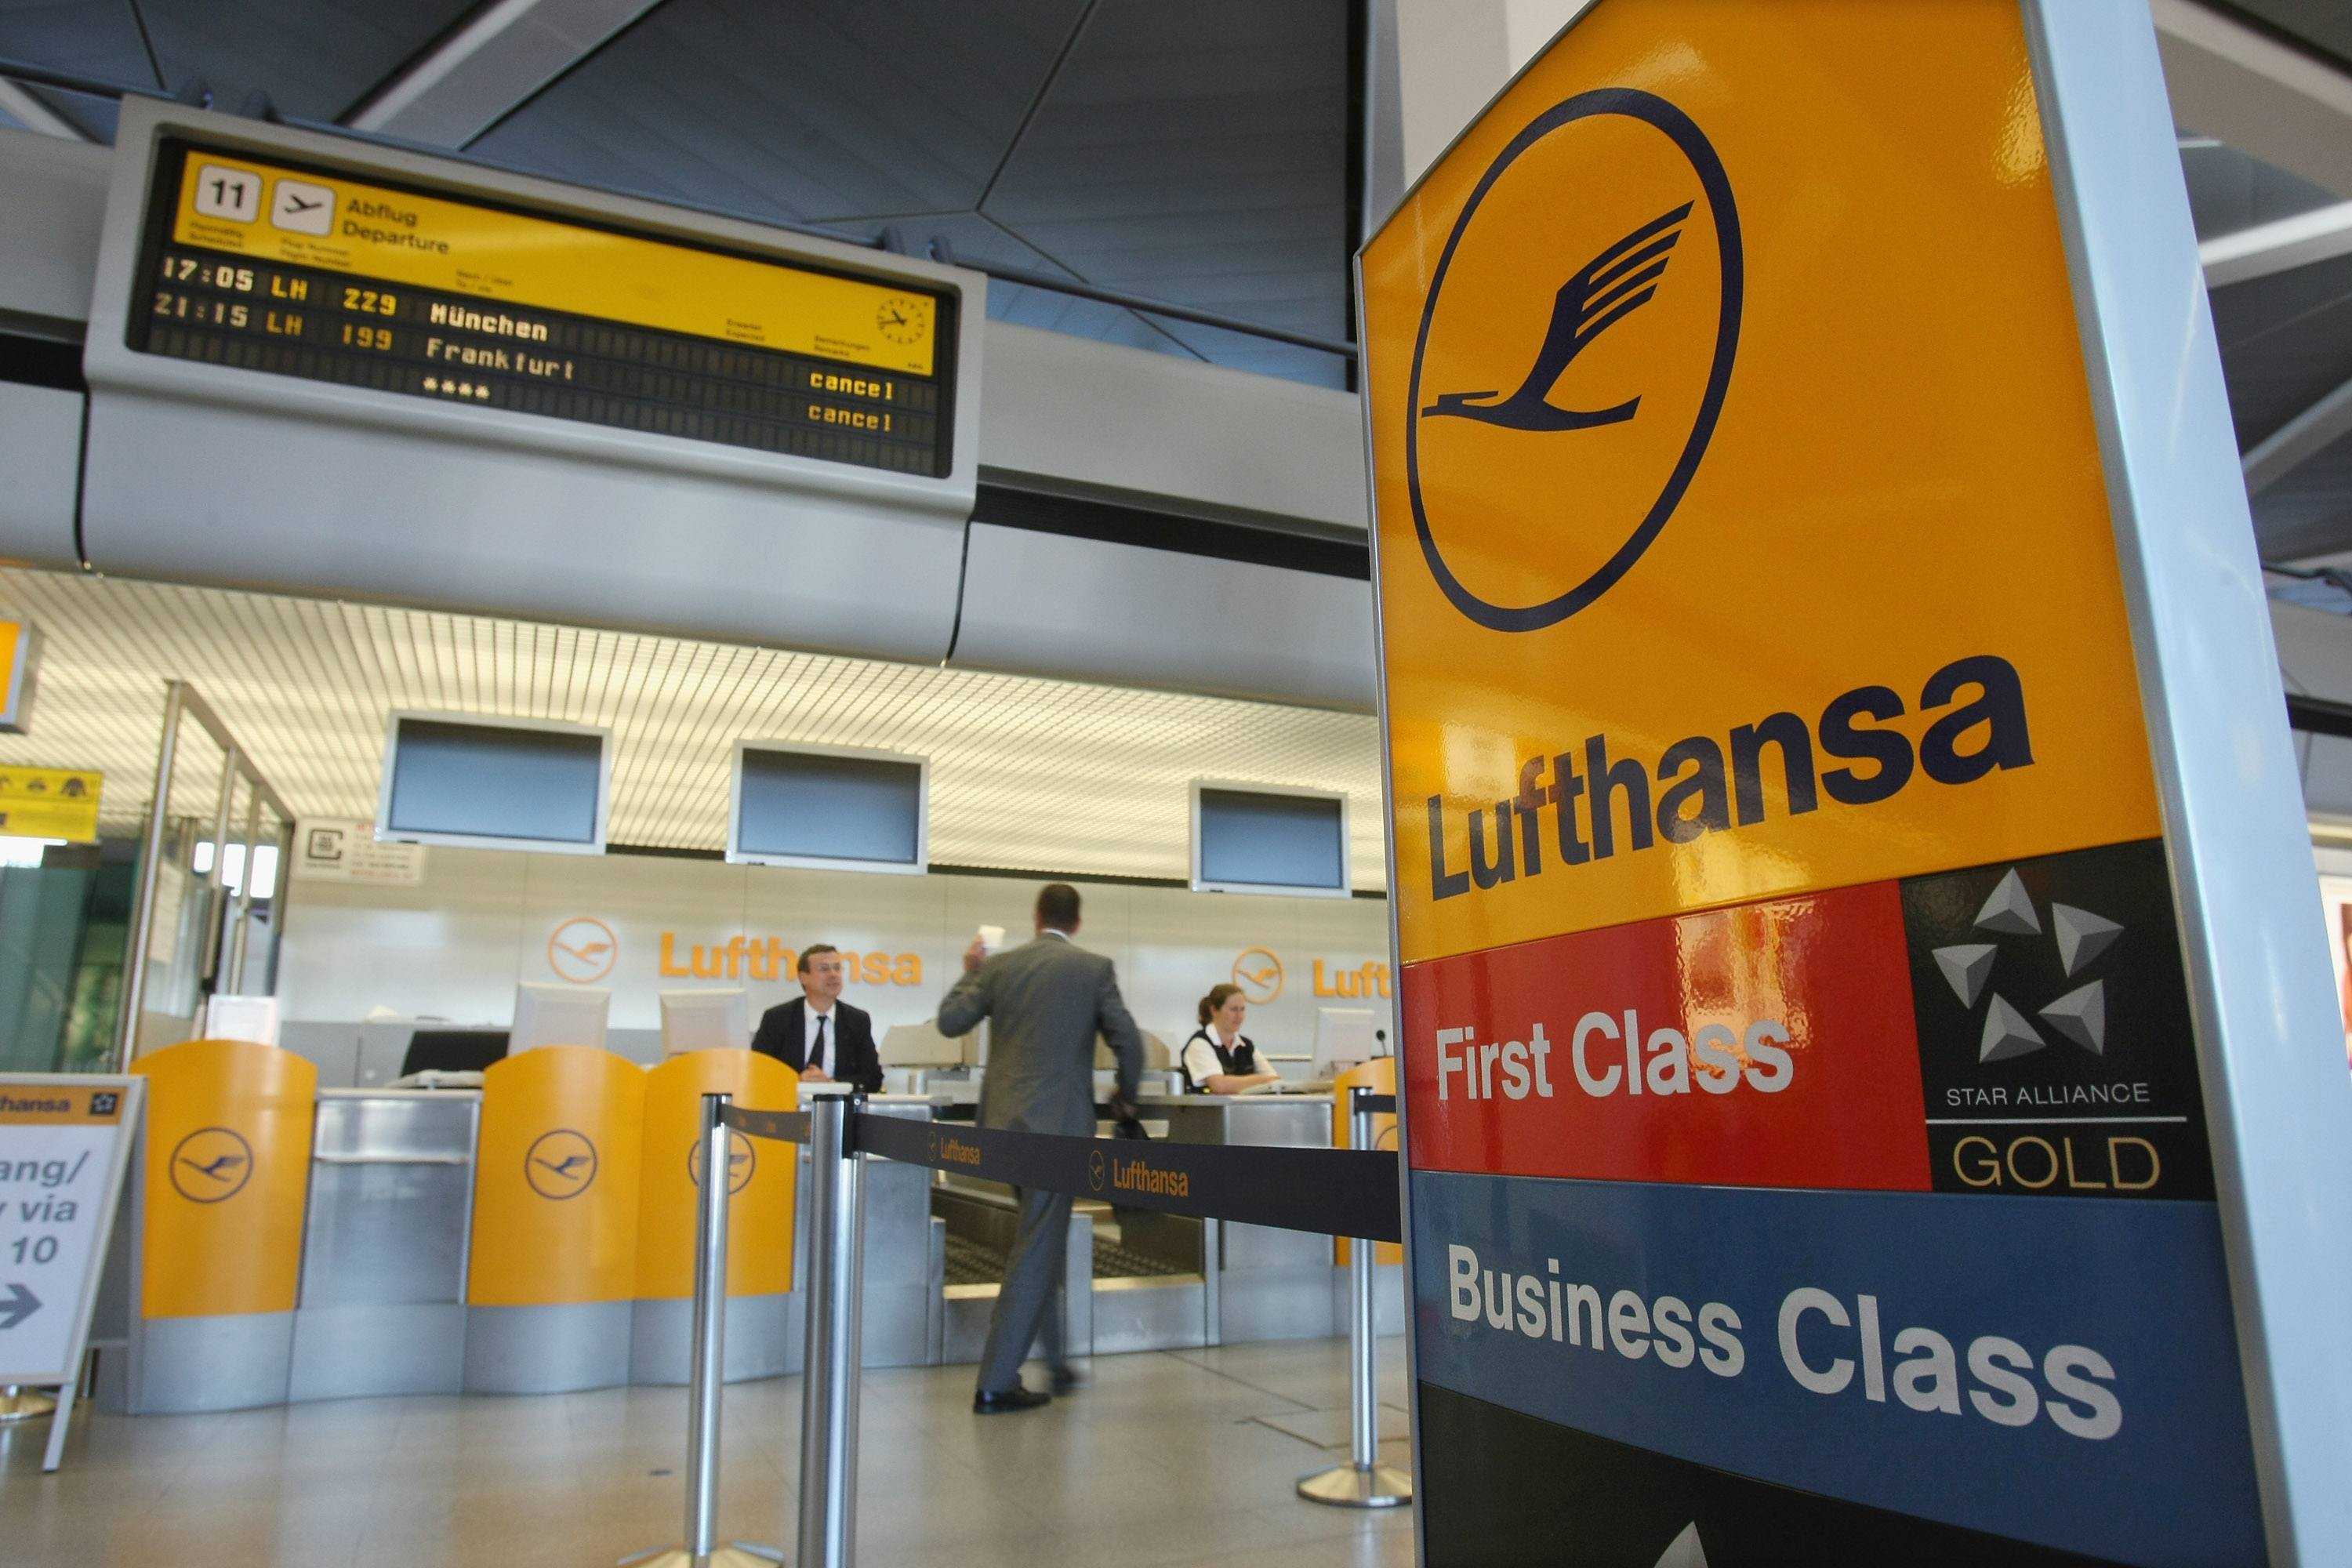 Lufthansa first class check in